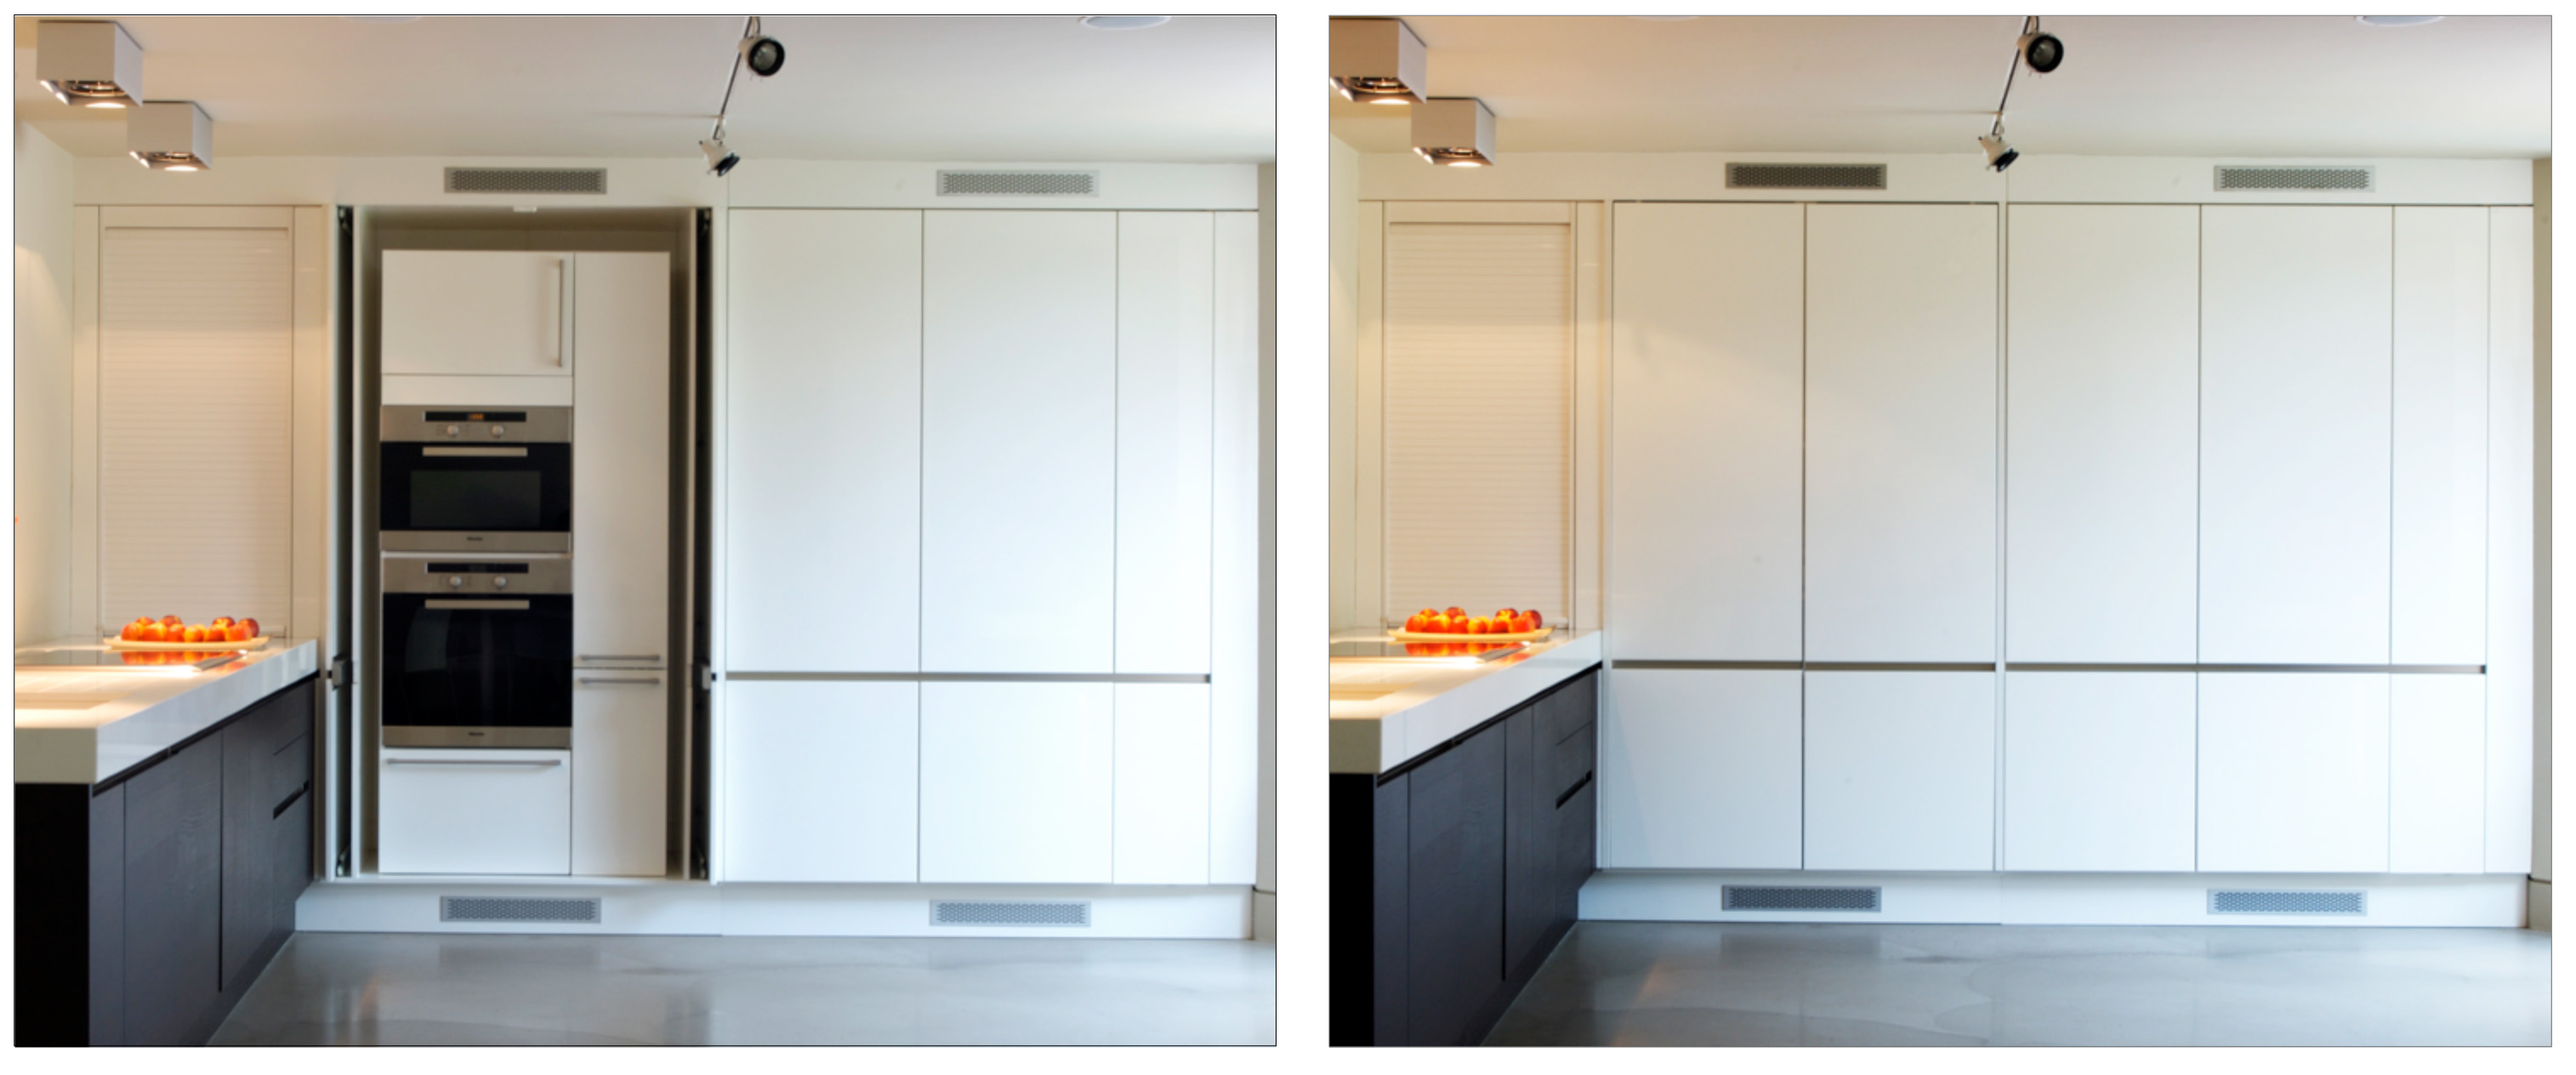 Pocket Doors On Cabinets In The Kitchen